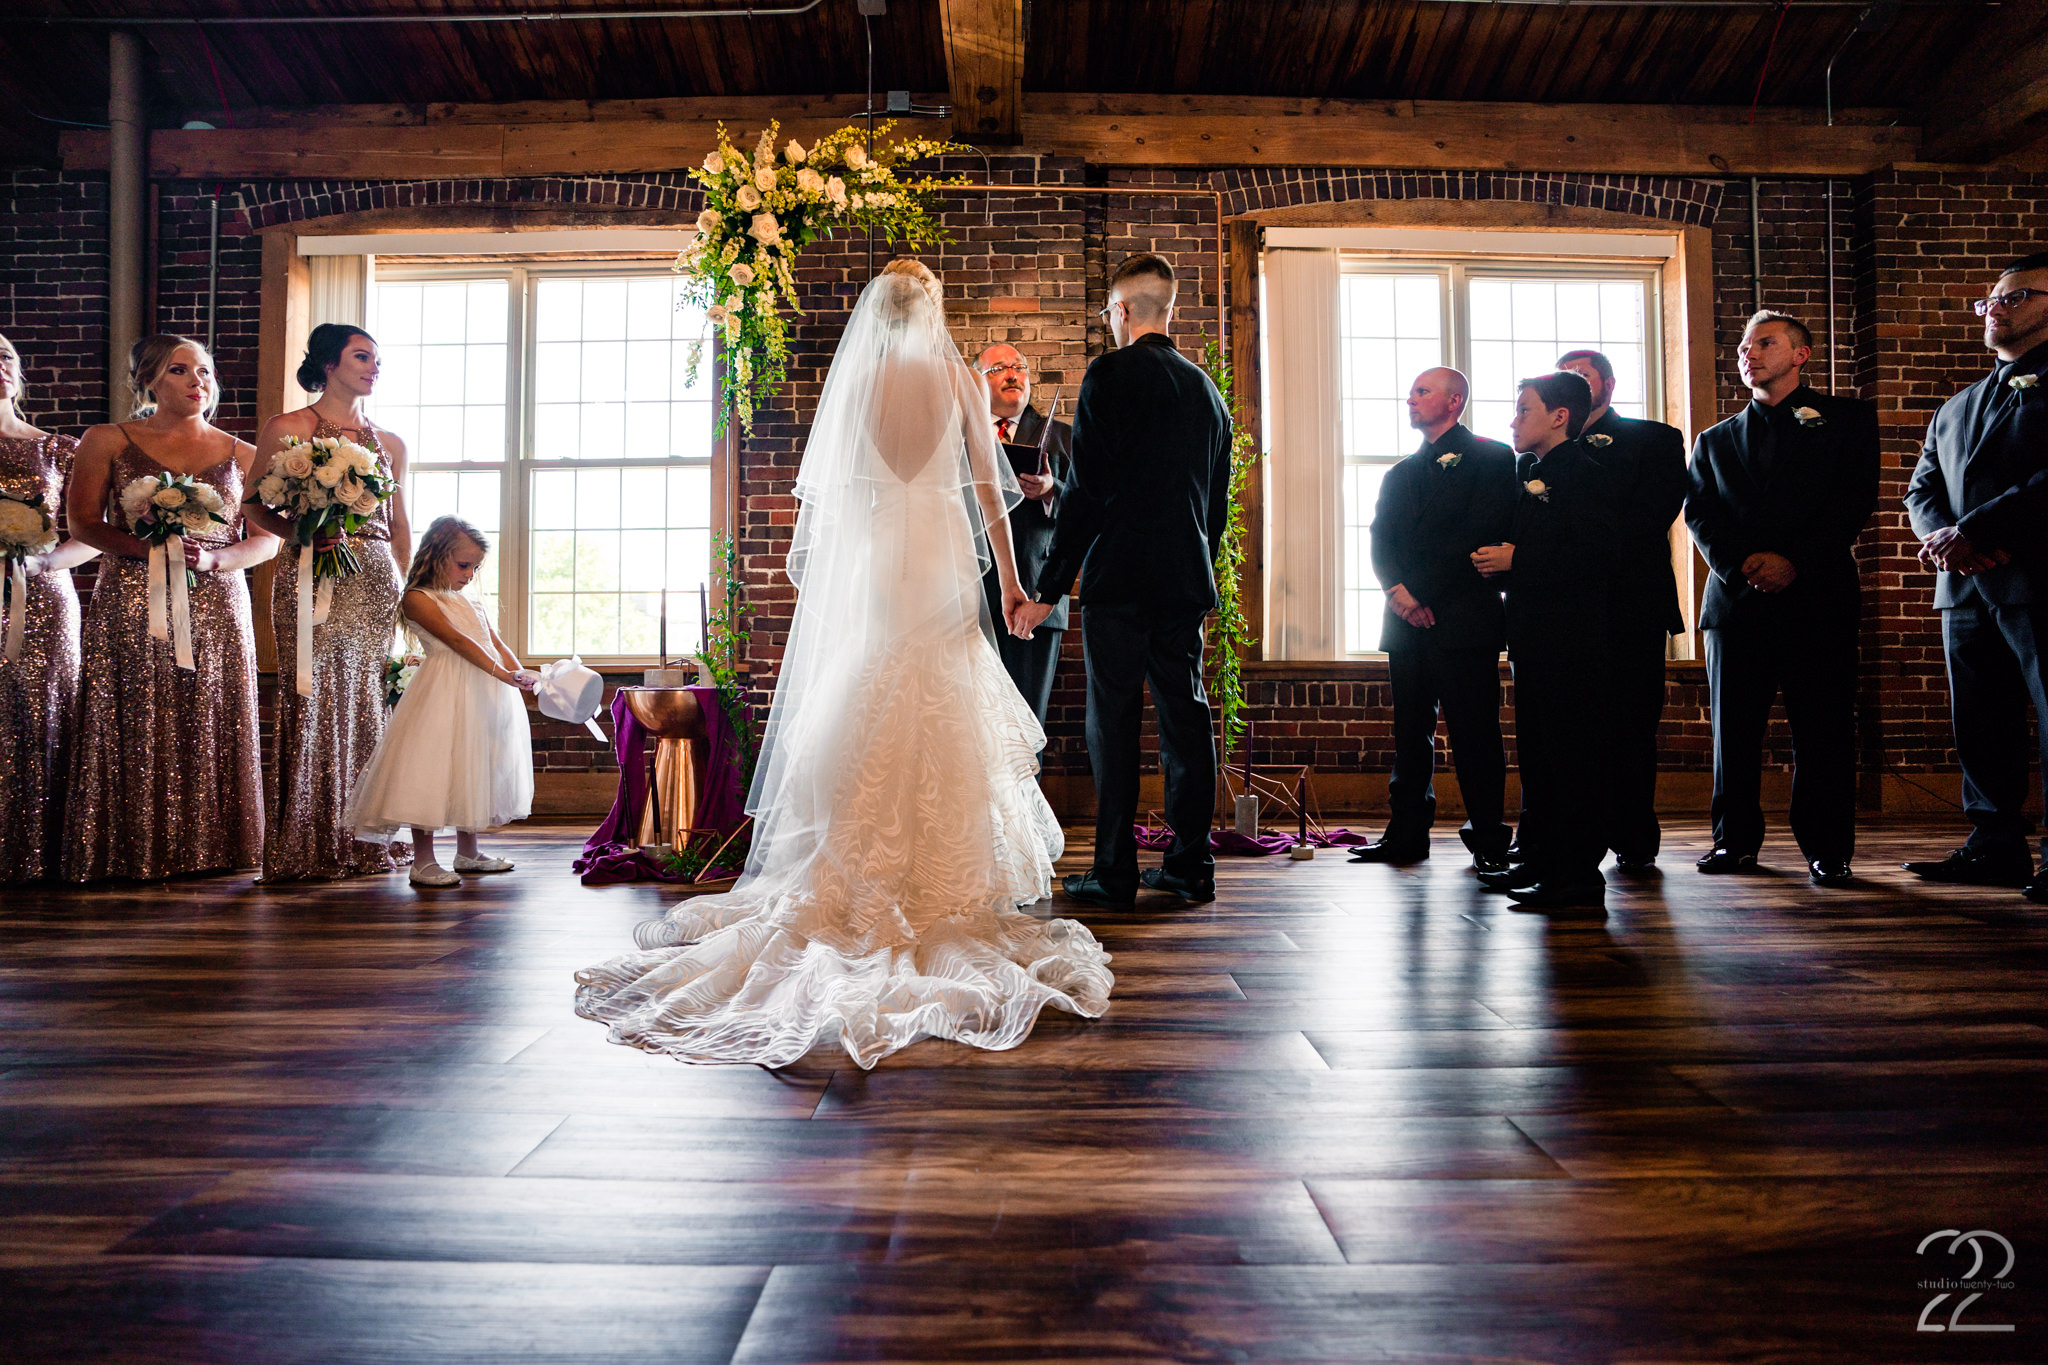 Top of the Market in Dayton, Ohio is one of our absolute favourite venues to shoot at. The warm yet industrial feel, mixed with the incredible staff, make for perfect weddings every time.